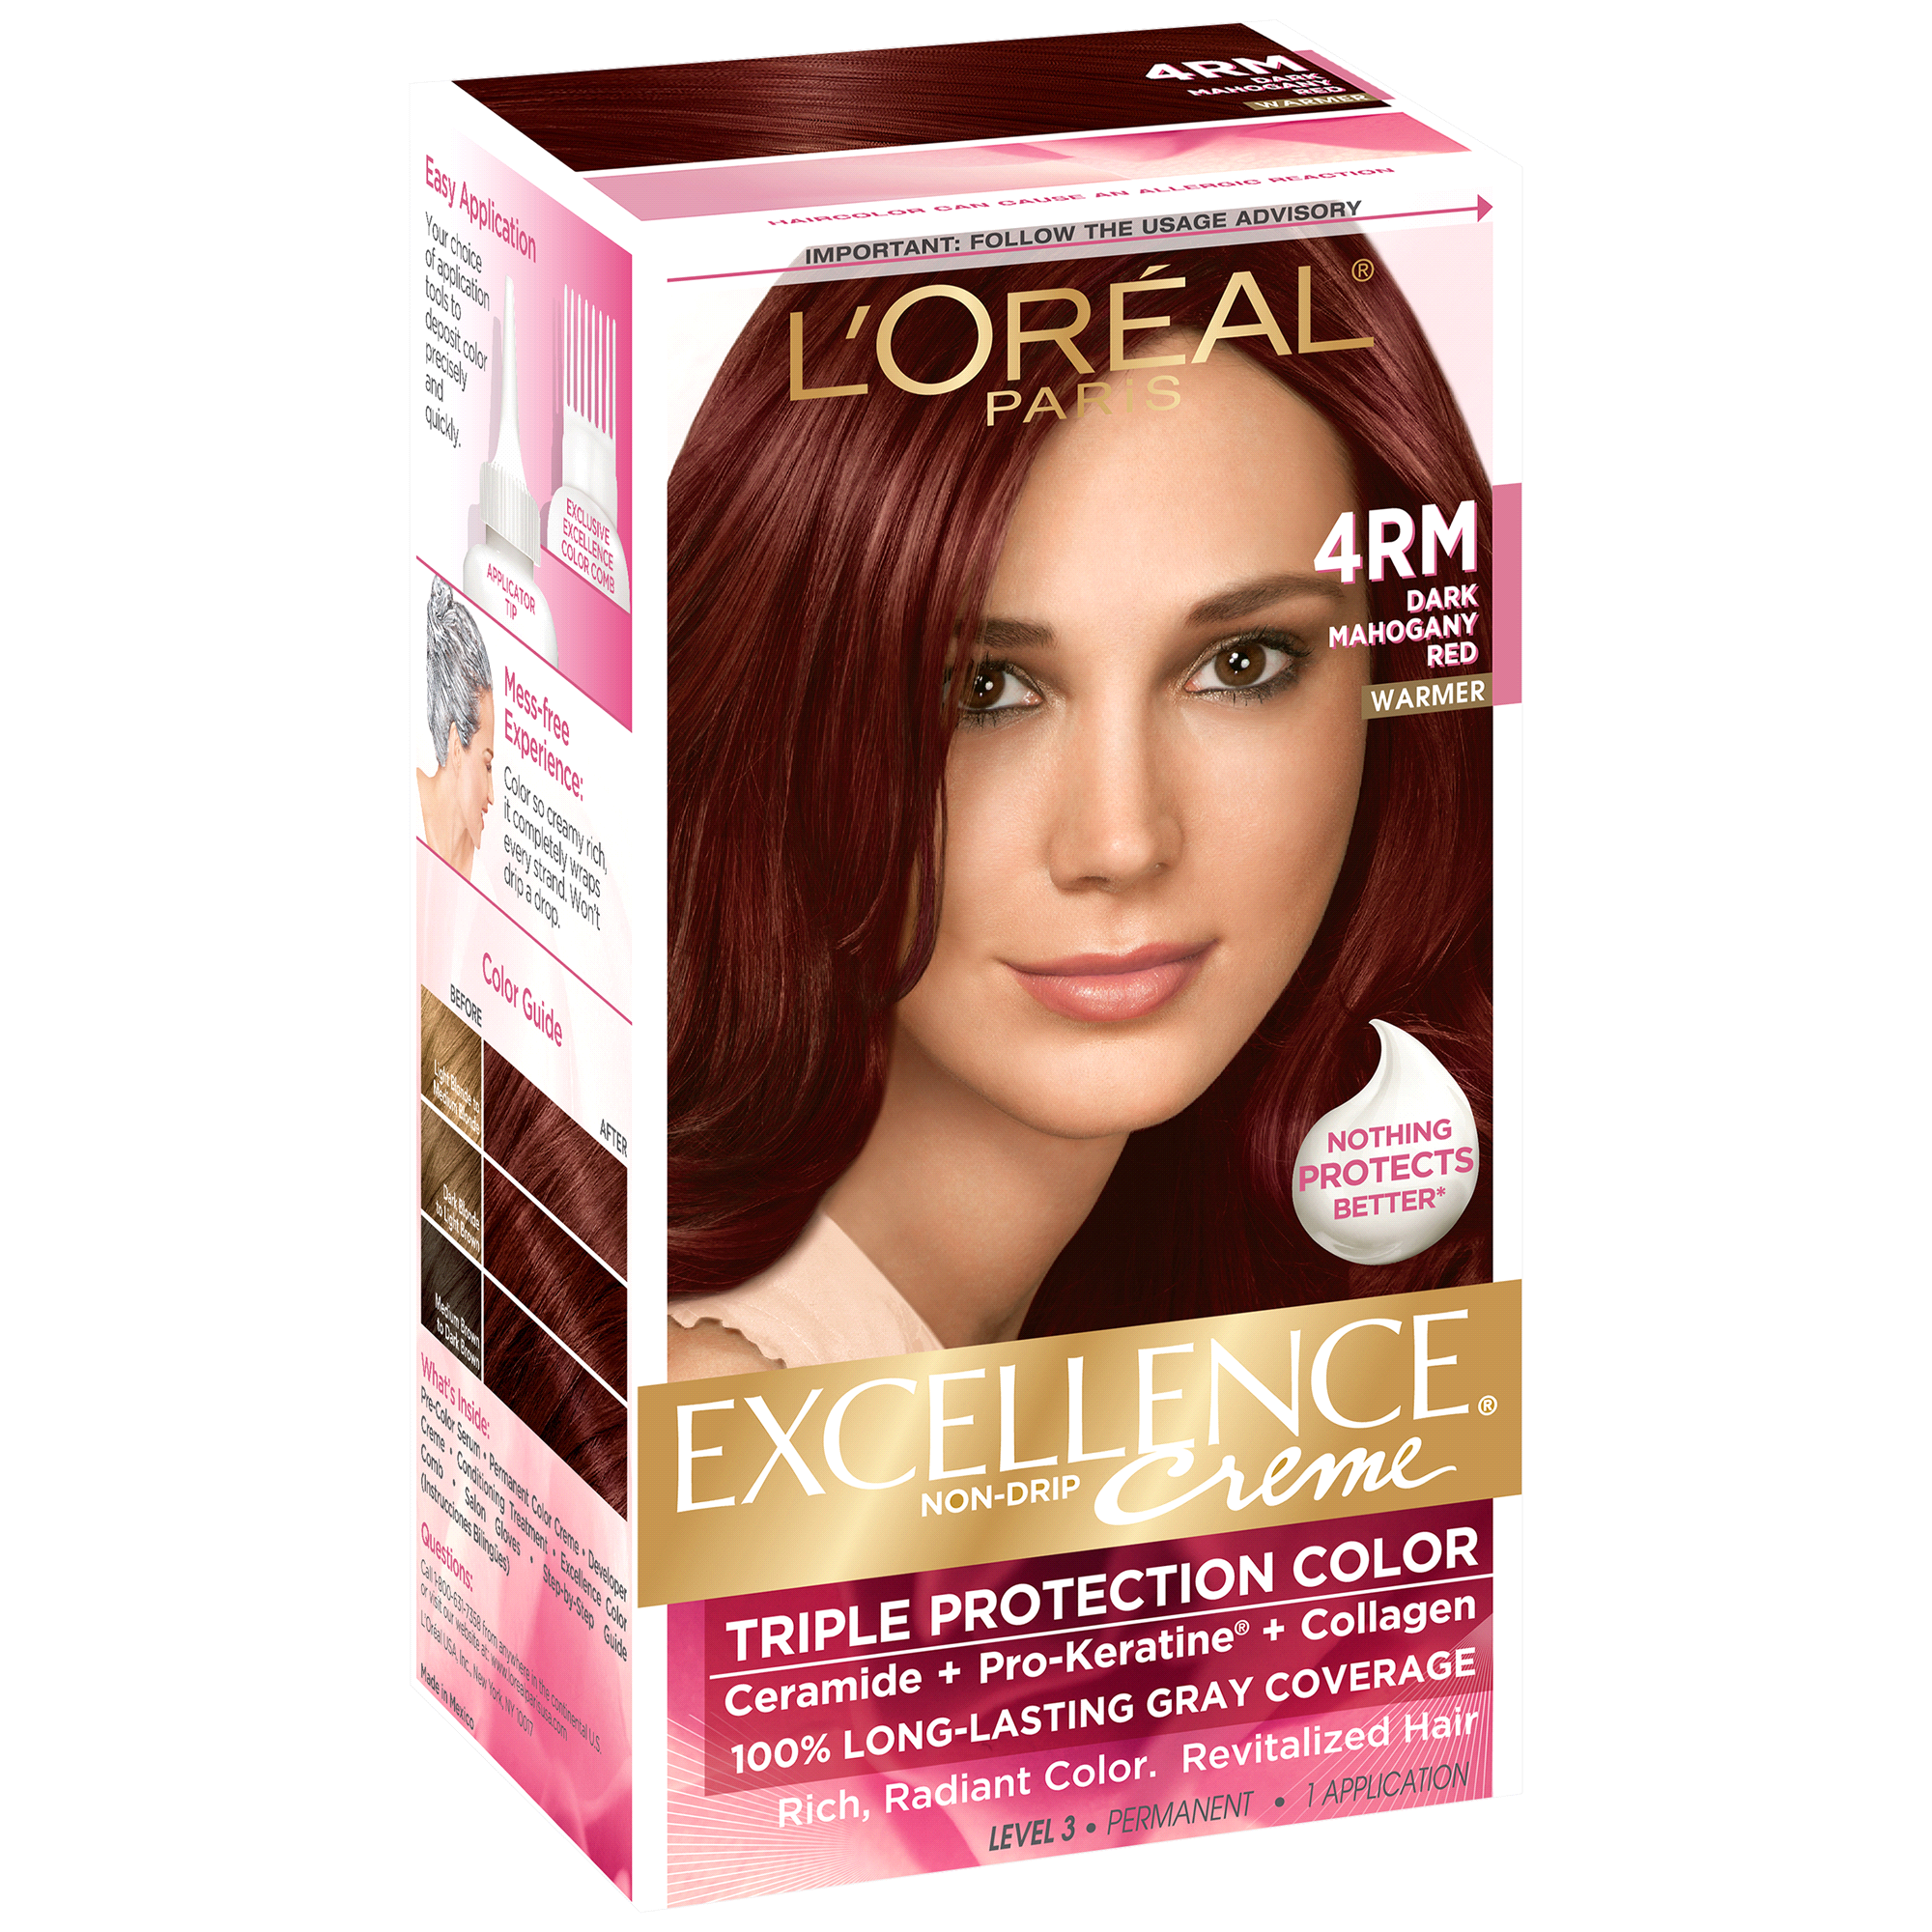 Loreal Paris Excellence Non Drip Crme Triple Protection Color 4rm